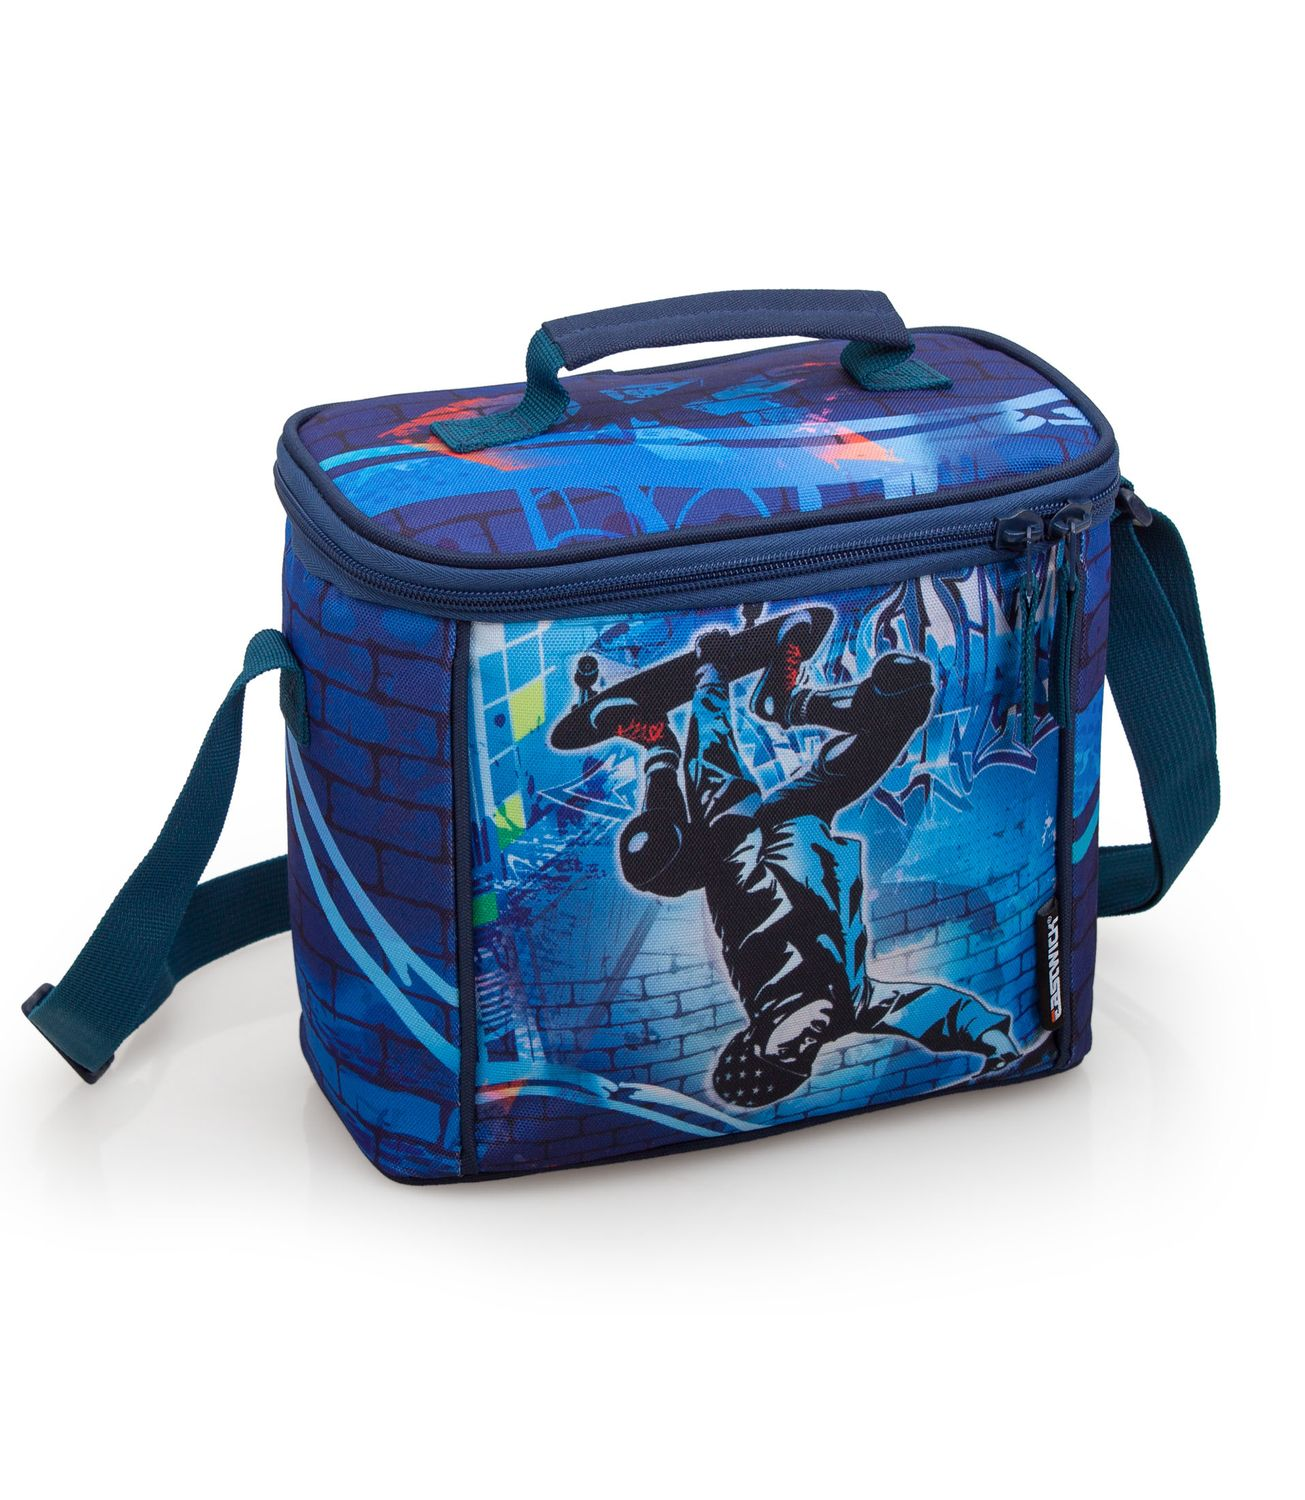 Eastwick BLUE SKATER Cooler Lunch Bag – image 1